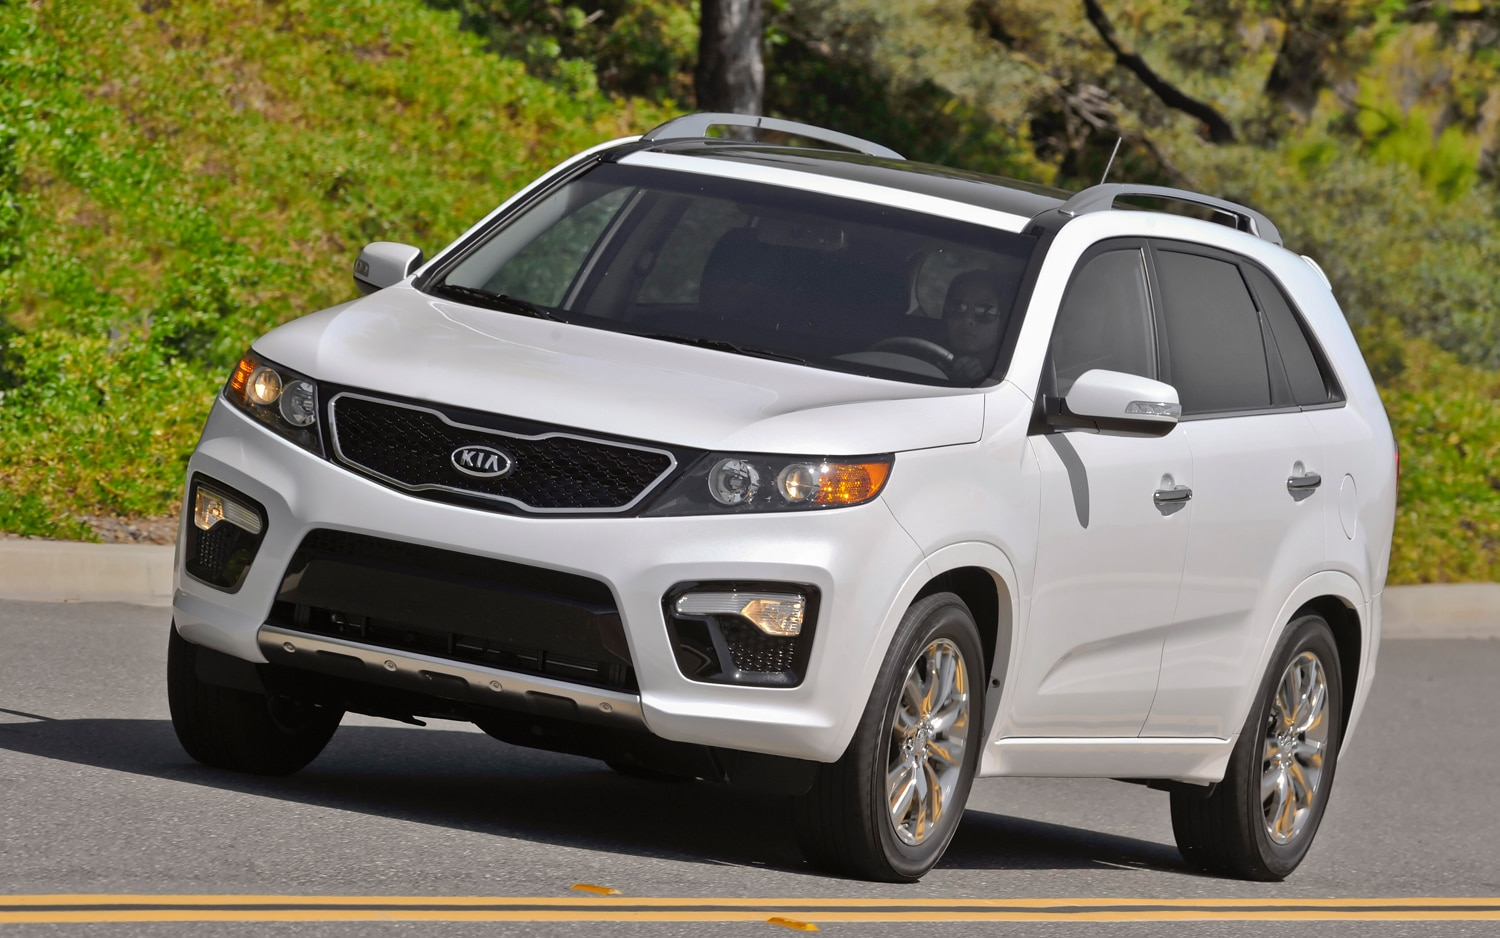 2012 Kia Sorento Front Left Side View 5